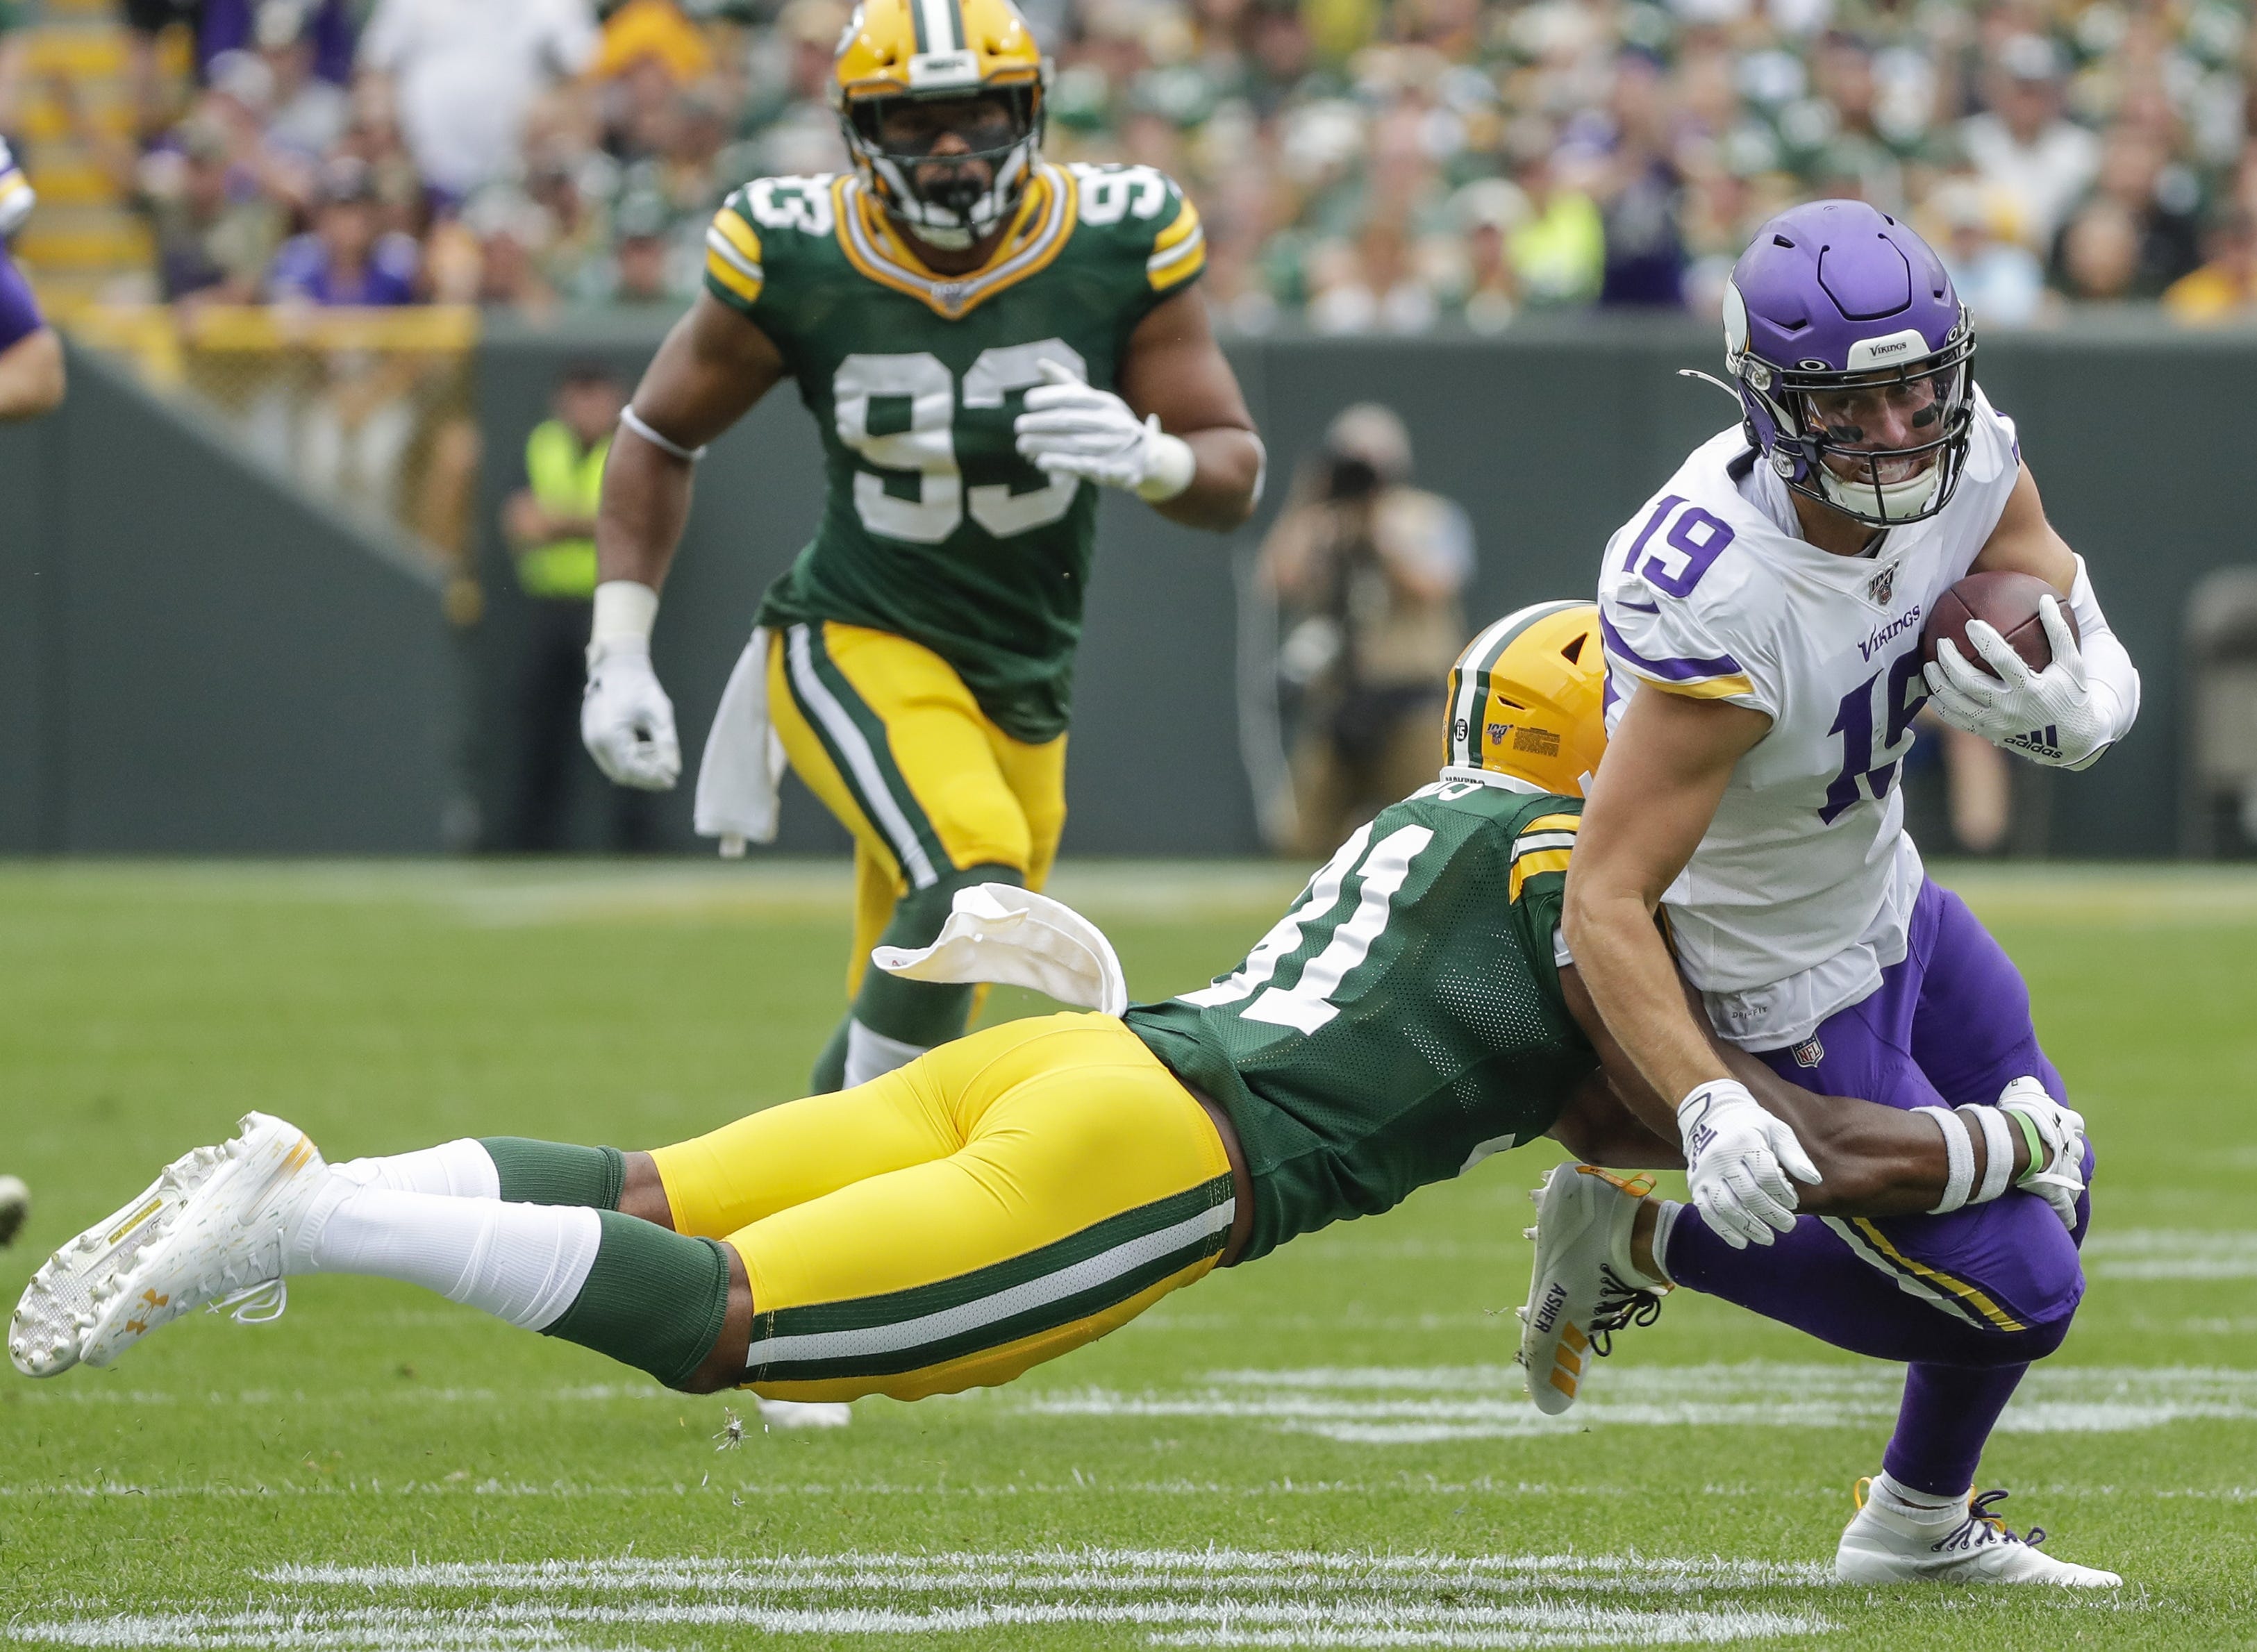 Packers strike early, hold on to beat Vikings 21-16 and improve to 2-0